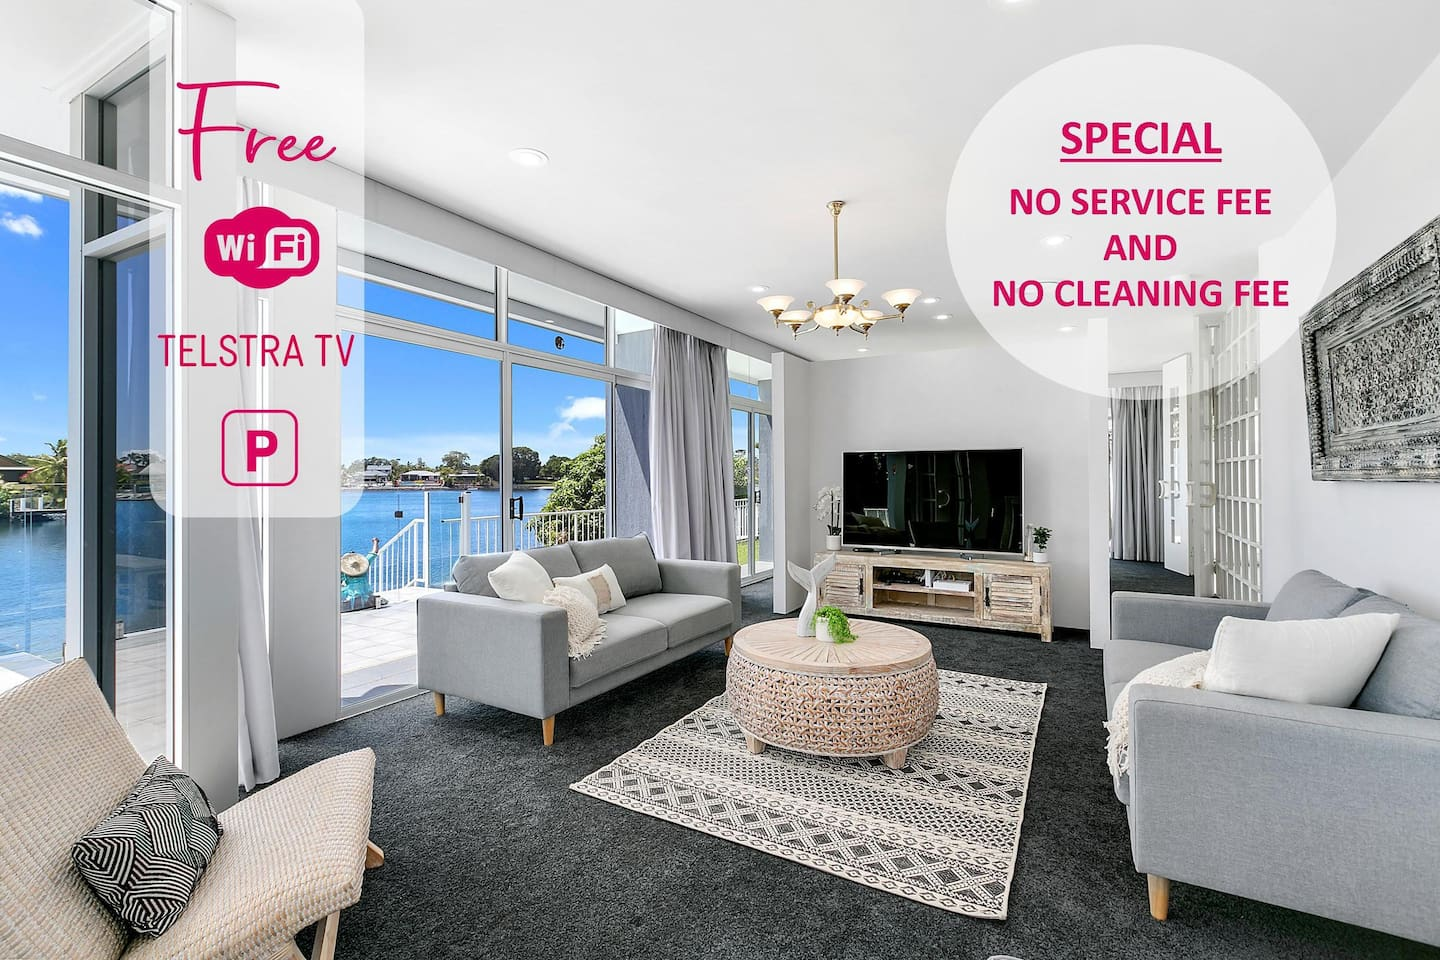 Gold Coast Luxury Resorts welcomes you to our Havana Blue Holiday Home.  We don't charge our guests a SERVICE FEE or CLEANING FEES.. Because we love our guests :)